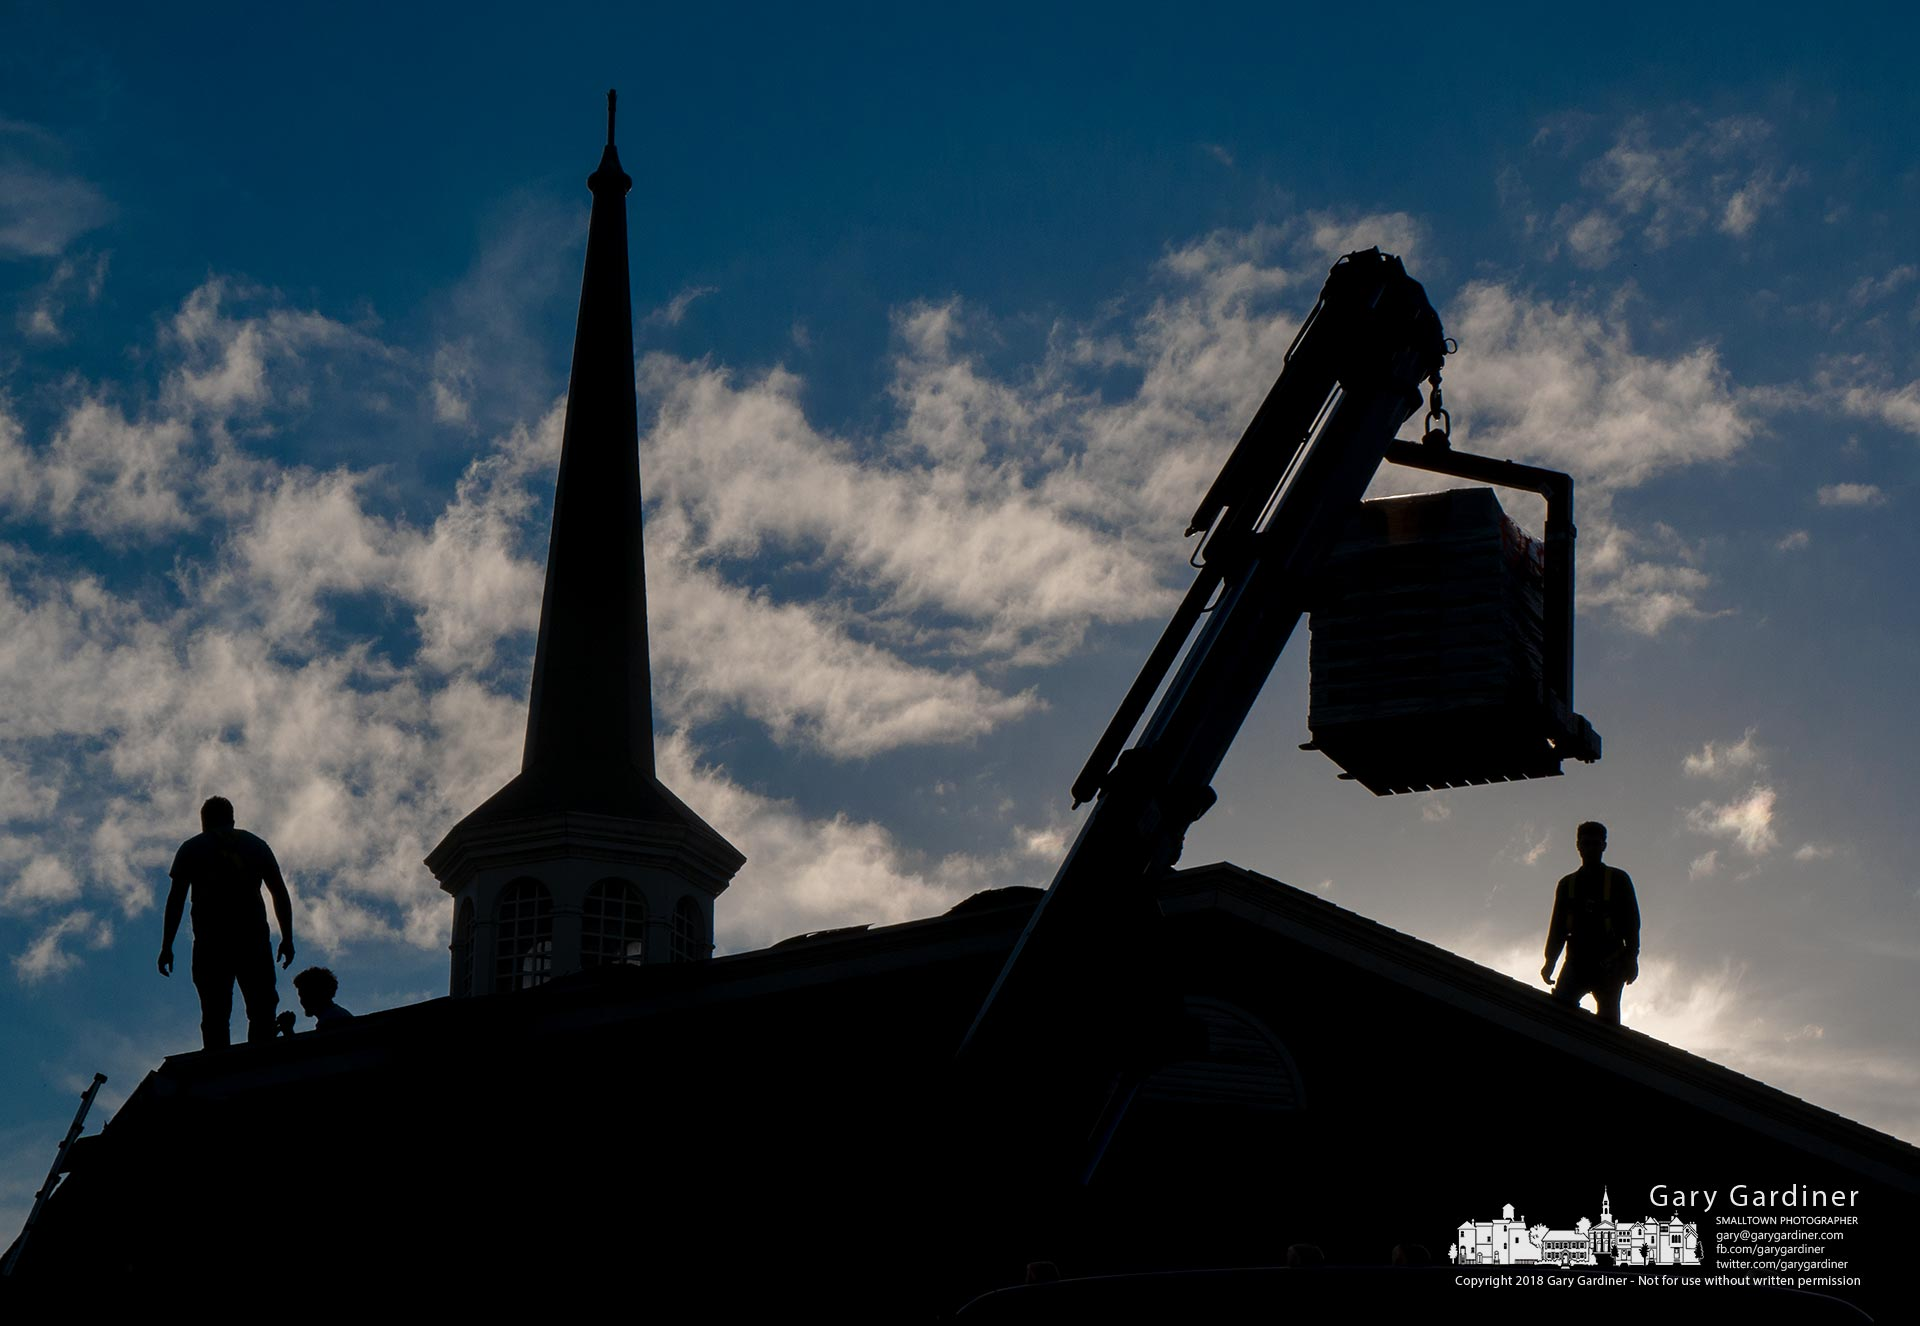 Roofers load a palette of shingles atop the old Church of the Savior building on South State Street where they are replacing shingles on what is now a daycare center. My Final Photo for Oct. 10, 2018.